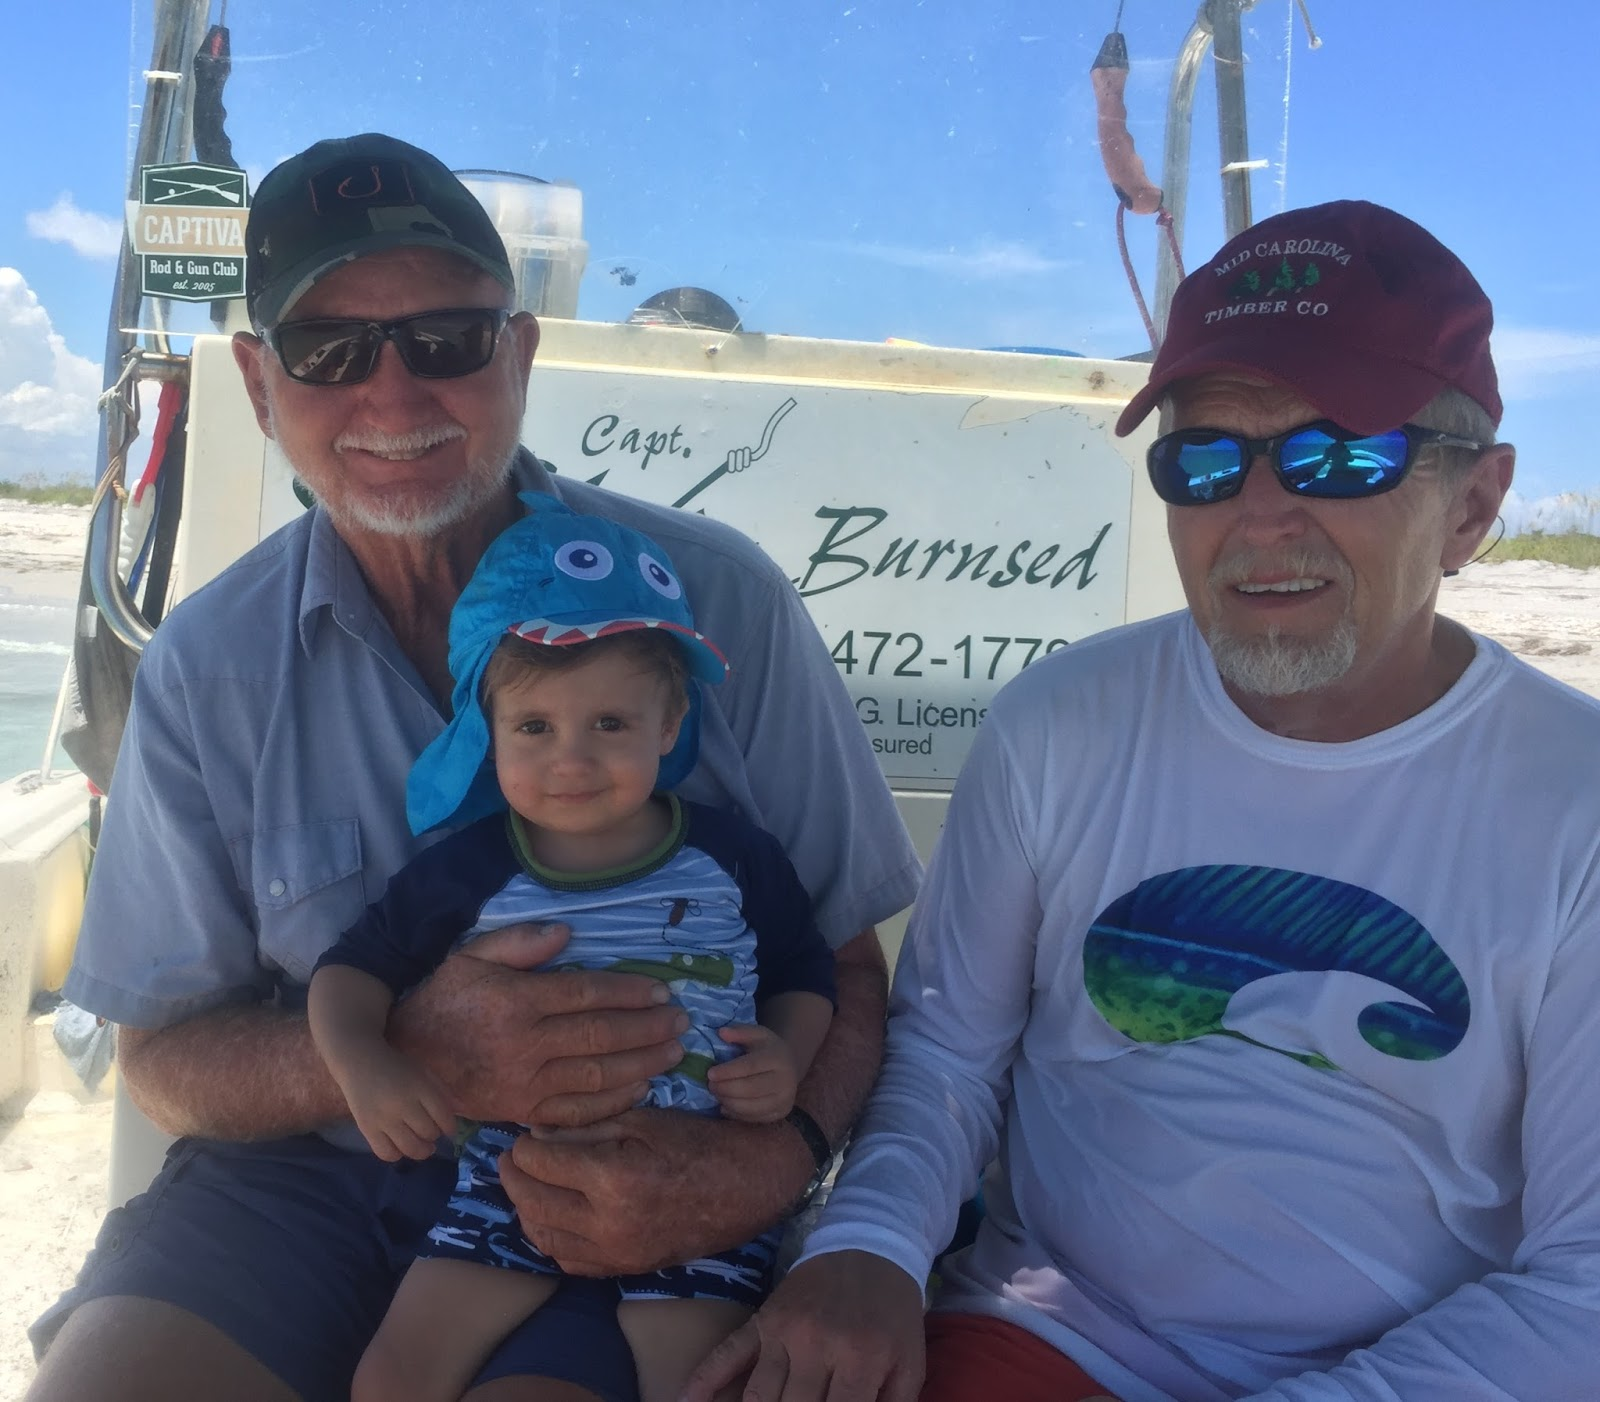 Santiva Saltwater Fishing Team Burnsed family Johnny Davis Family